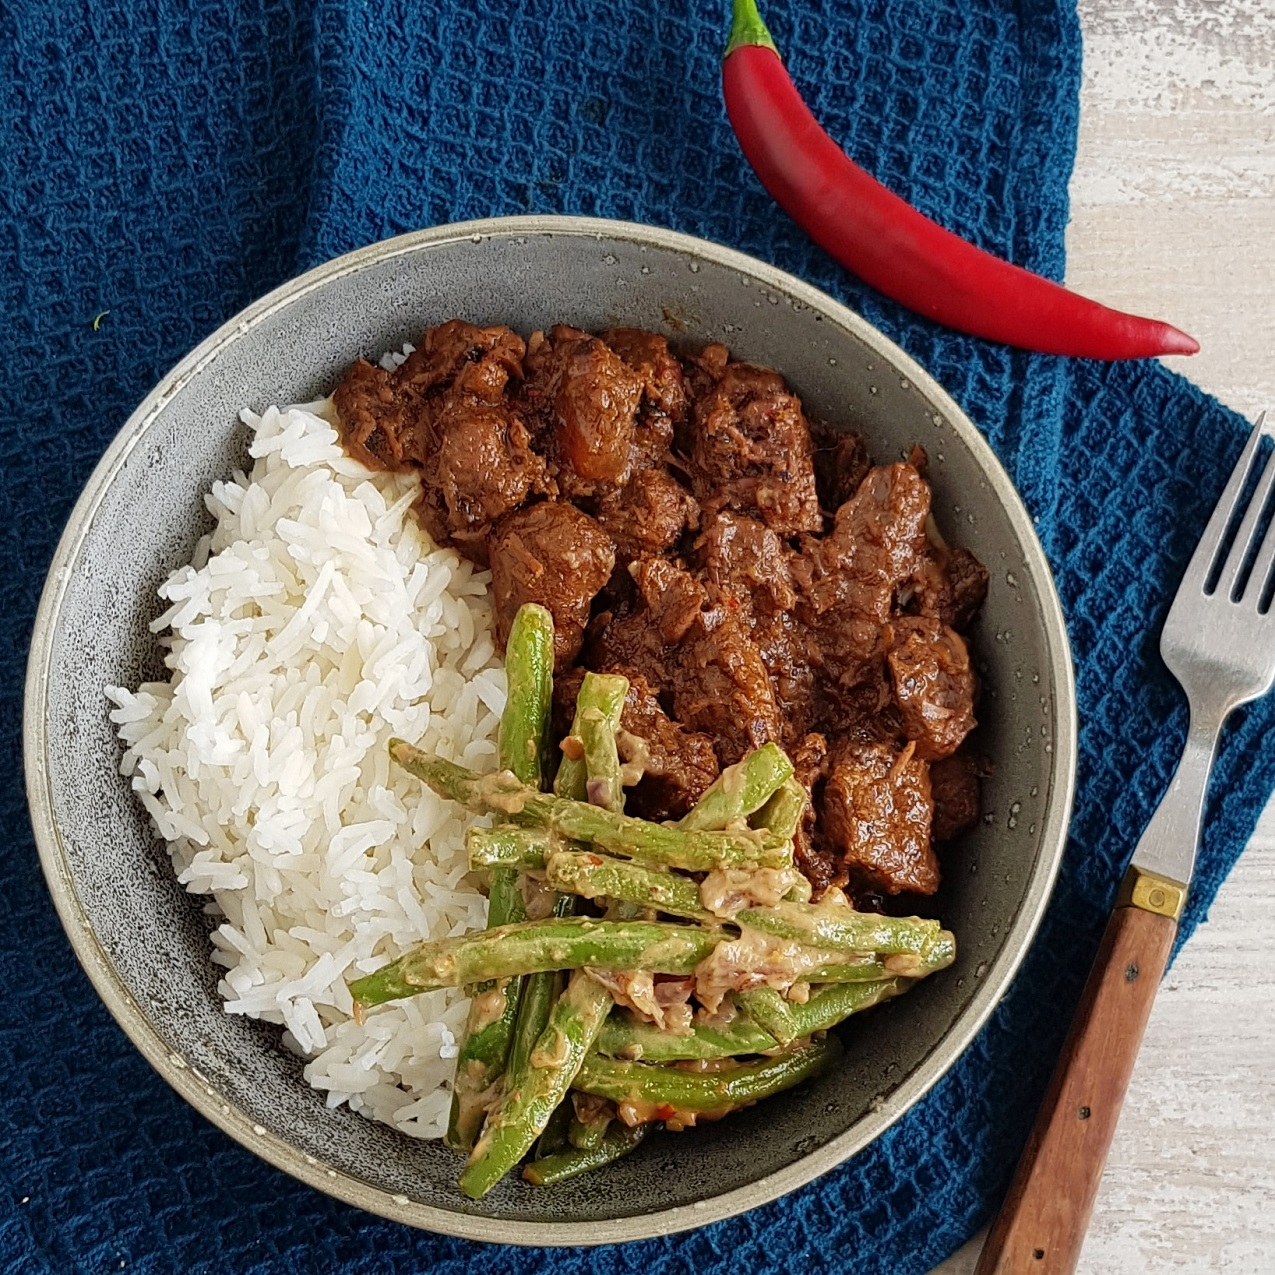 Rendang - Indonesisch stoofvlees